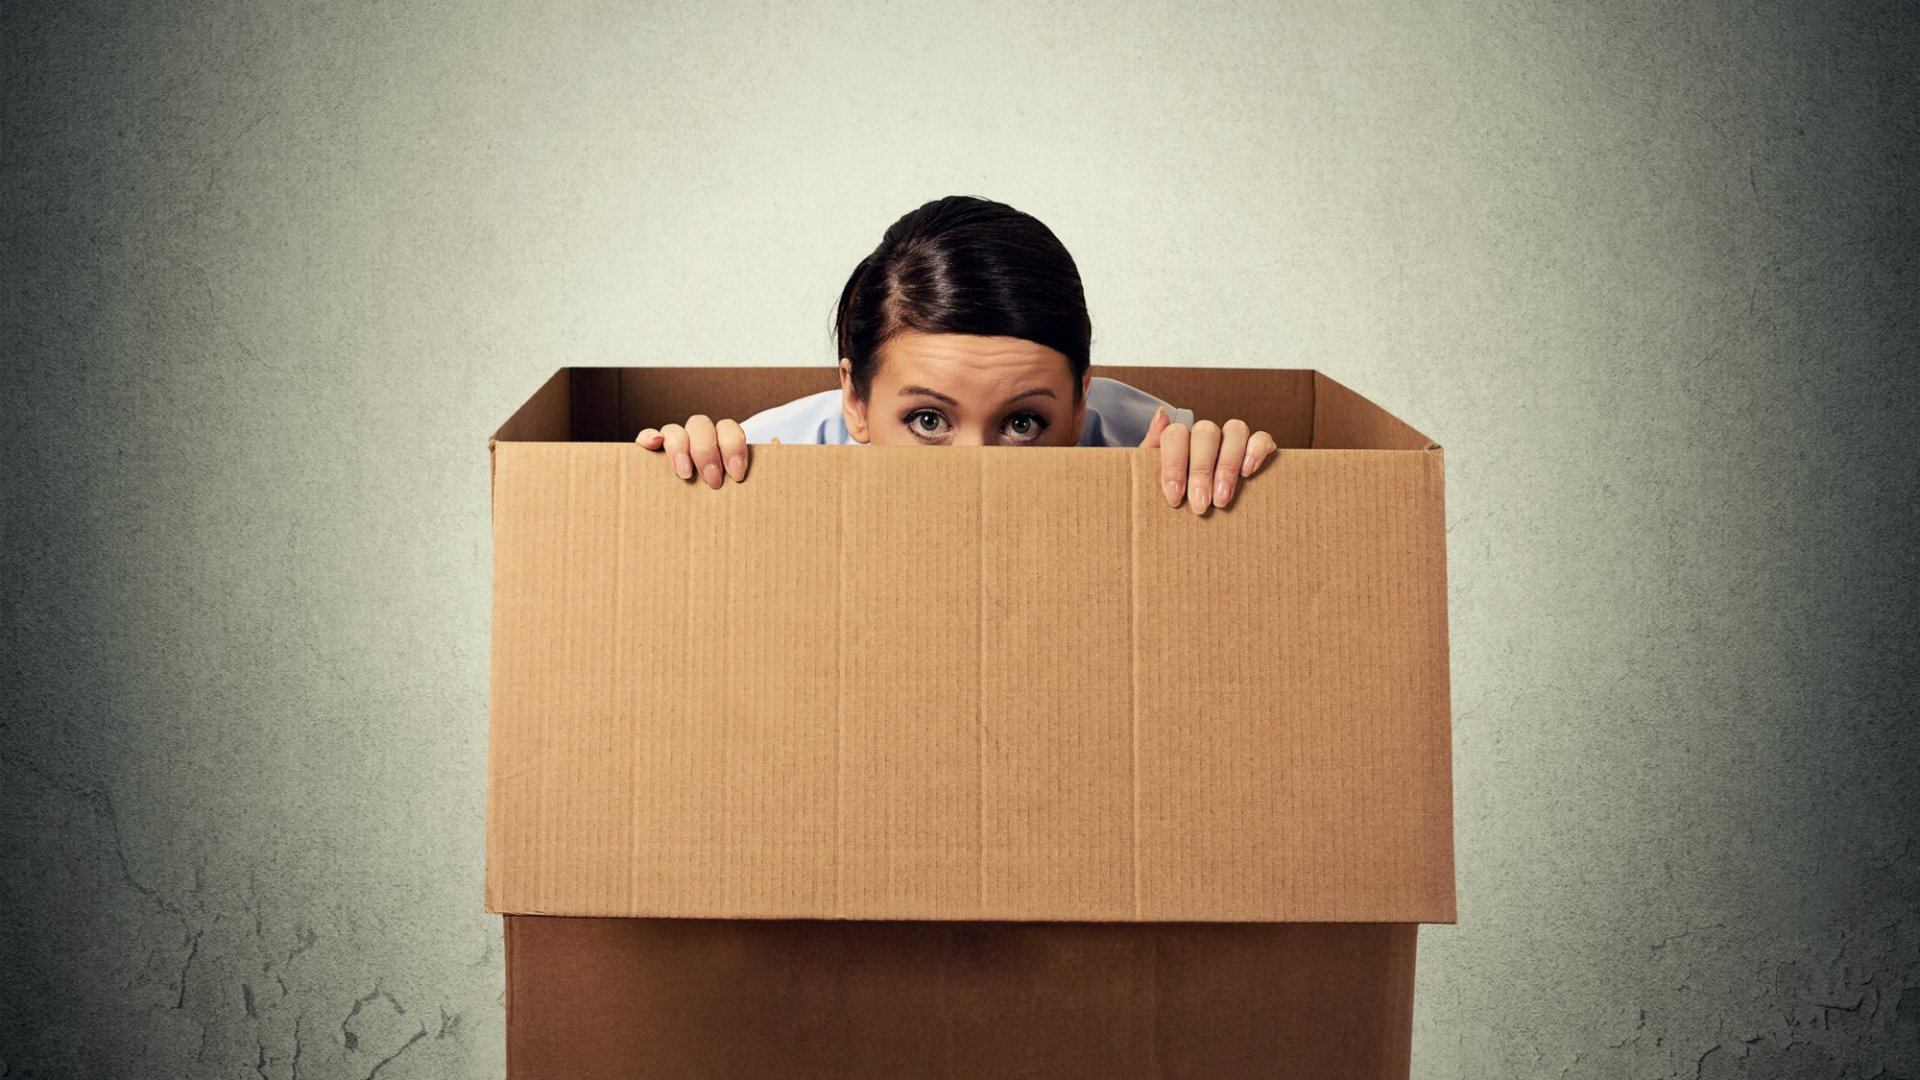 Are you hiding at home instead of getting out and facing the world?